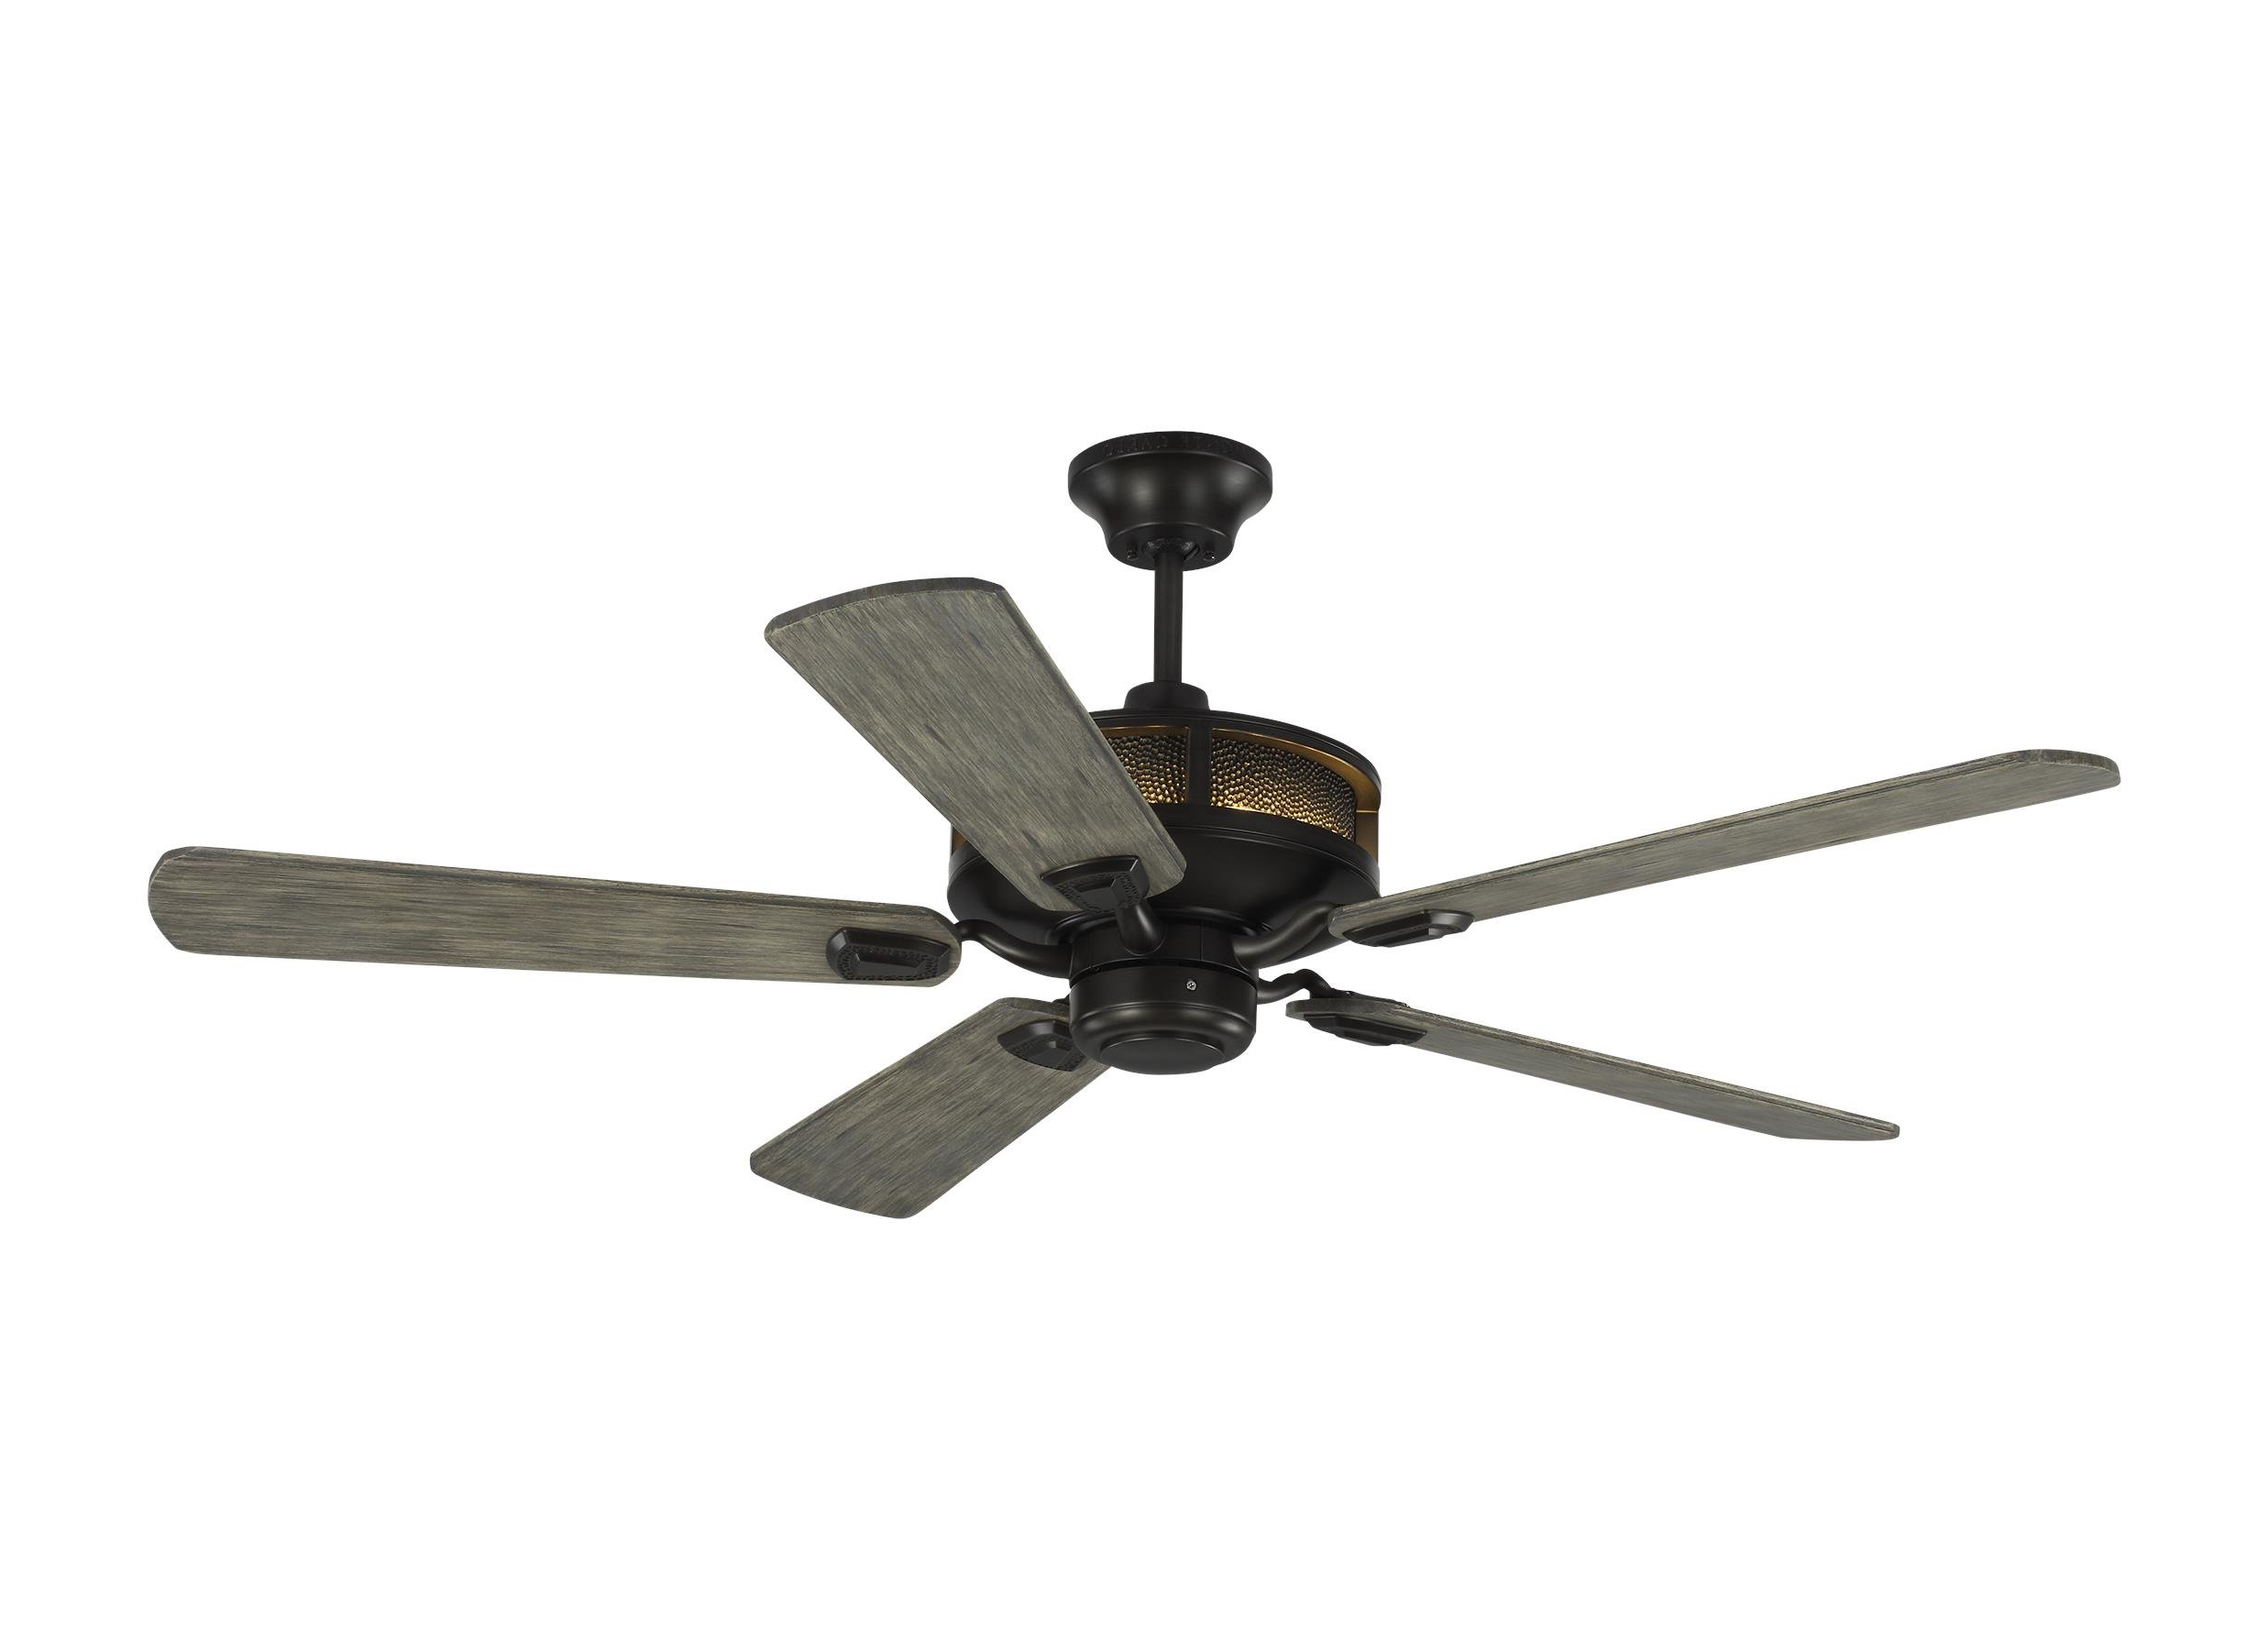 "Favorite Bennett 5 Blade Led Ceiling Fans With Remote With 56"" Artizan 5 Blade Led Ceiling Fan With Remote (View 14 of 20)"